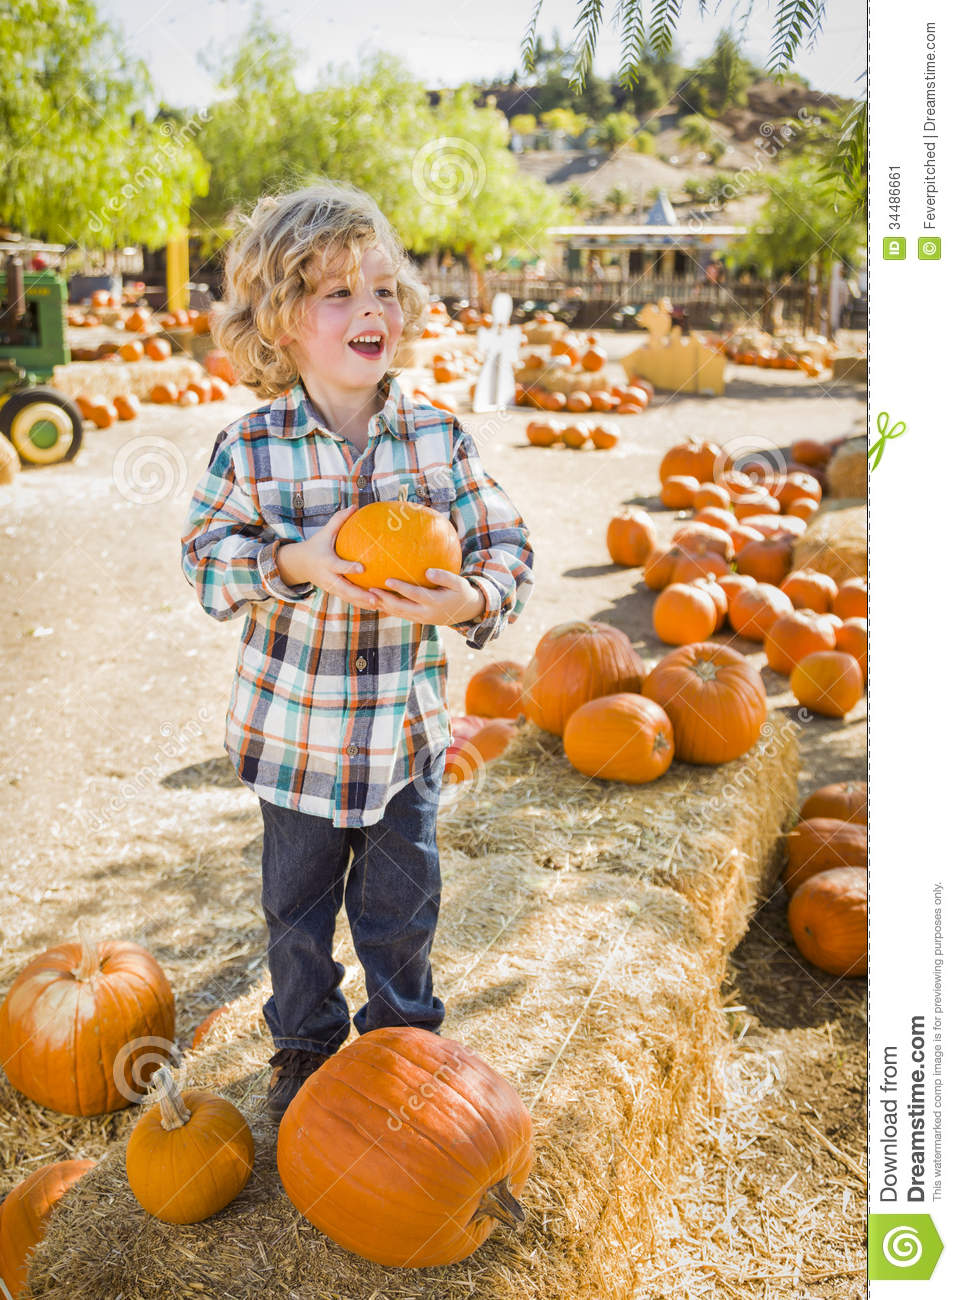 Excited Boy Holding His Pumpkin at a Pumpkin Patch